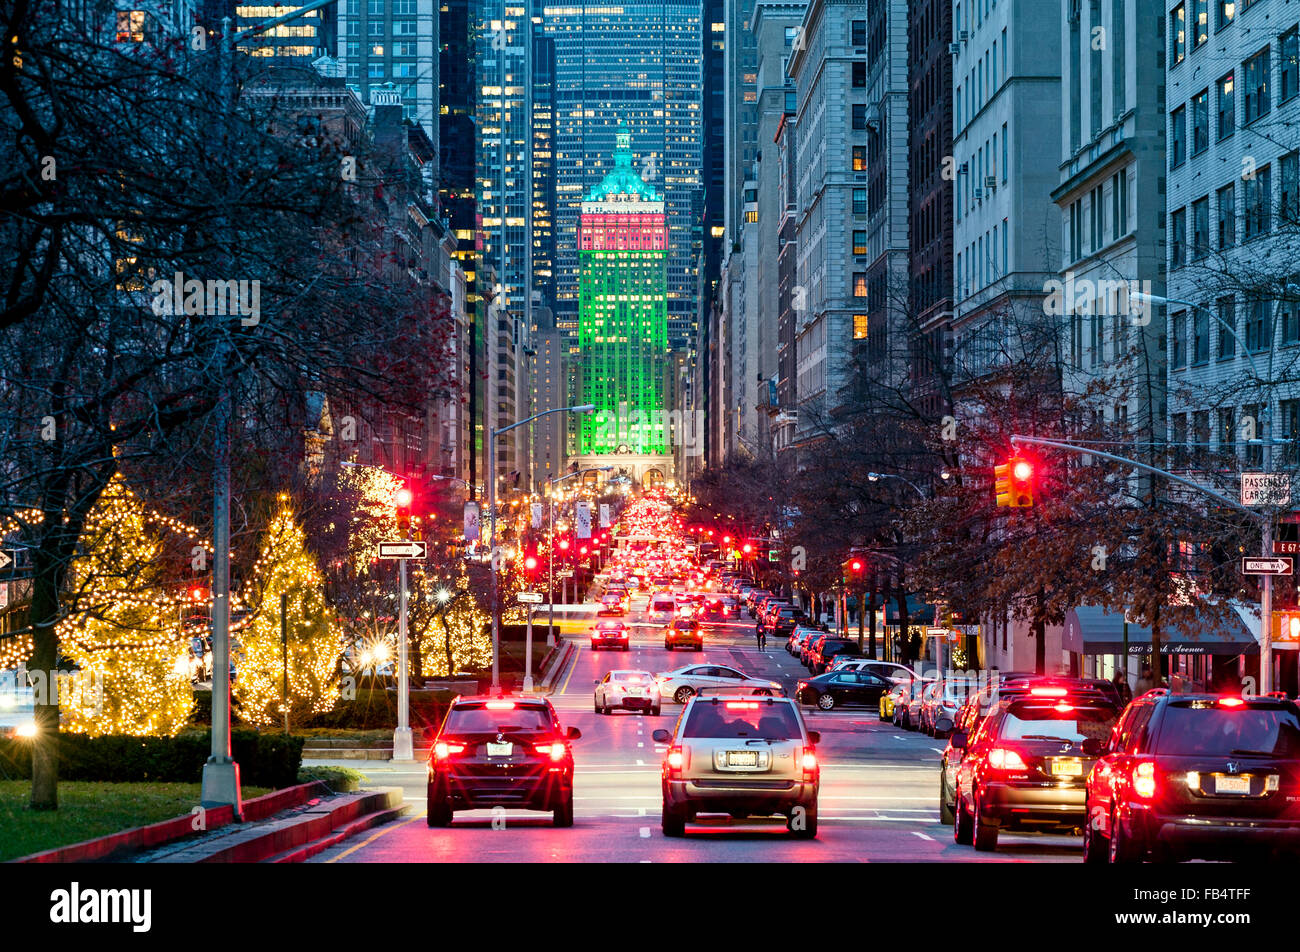 new york christmas new york streets park avenue new york city christmas decorations christmas trees traffic